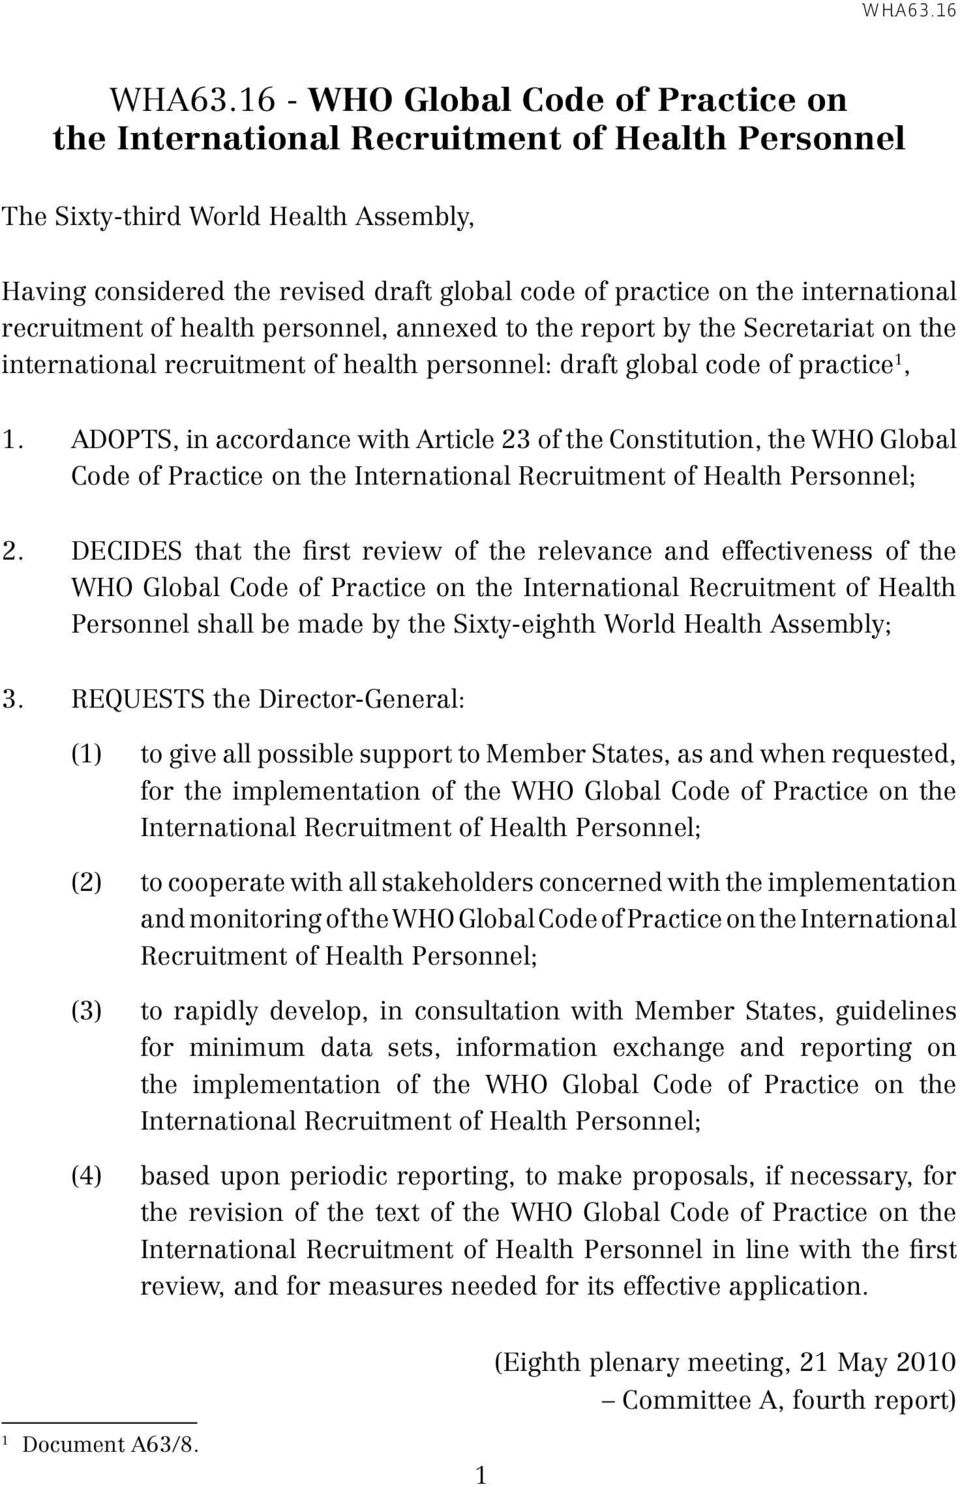 international recruitment of health personnel, annexed to the report by the Secretariat on the international recruitment of health personnel: draft global code of practice 1, 1.